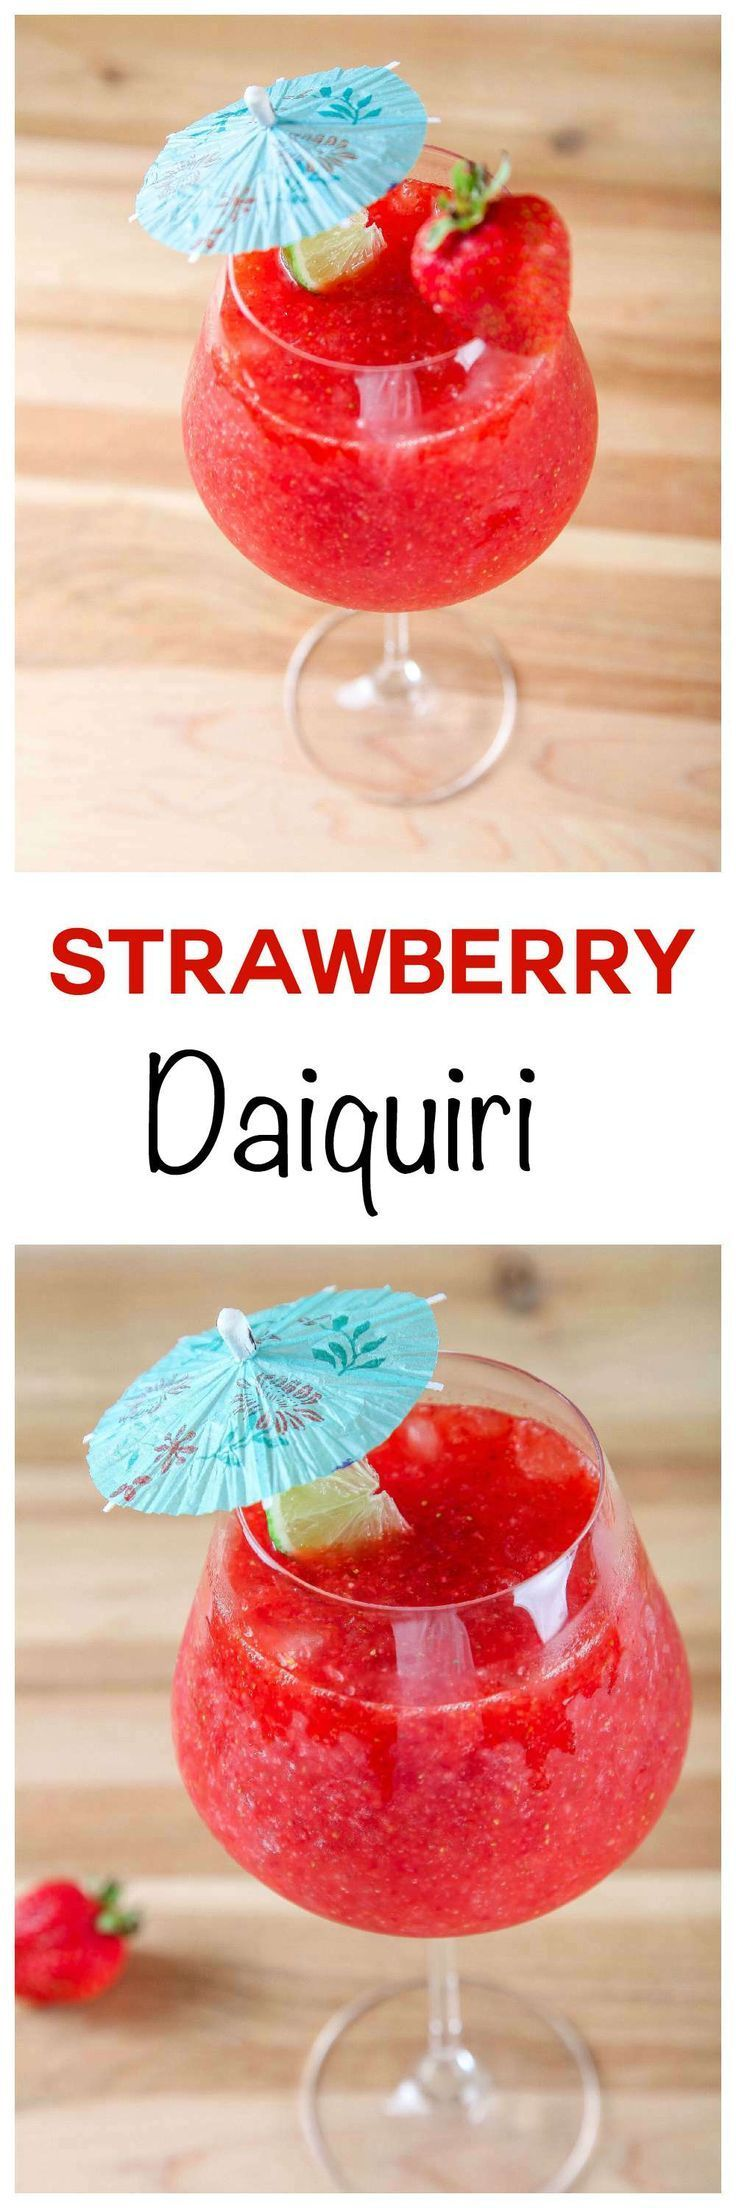 Easy Strawberry Daiquiri: Frosty, sweet, and refreshing cocktail that couldn't be easier to make. Requires only THREE common ingredients and tastes like an adult slushie! #ad